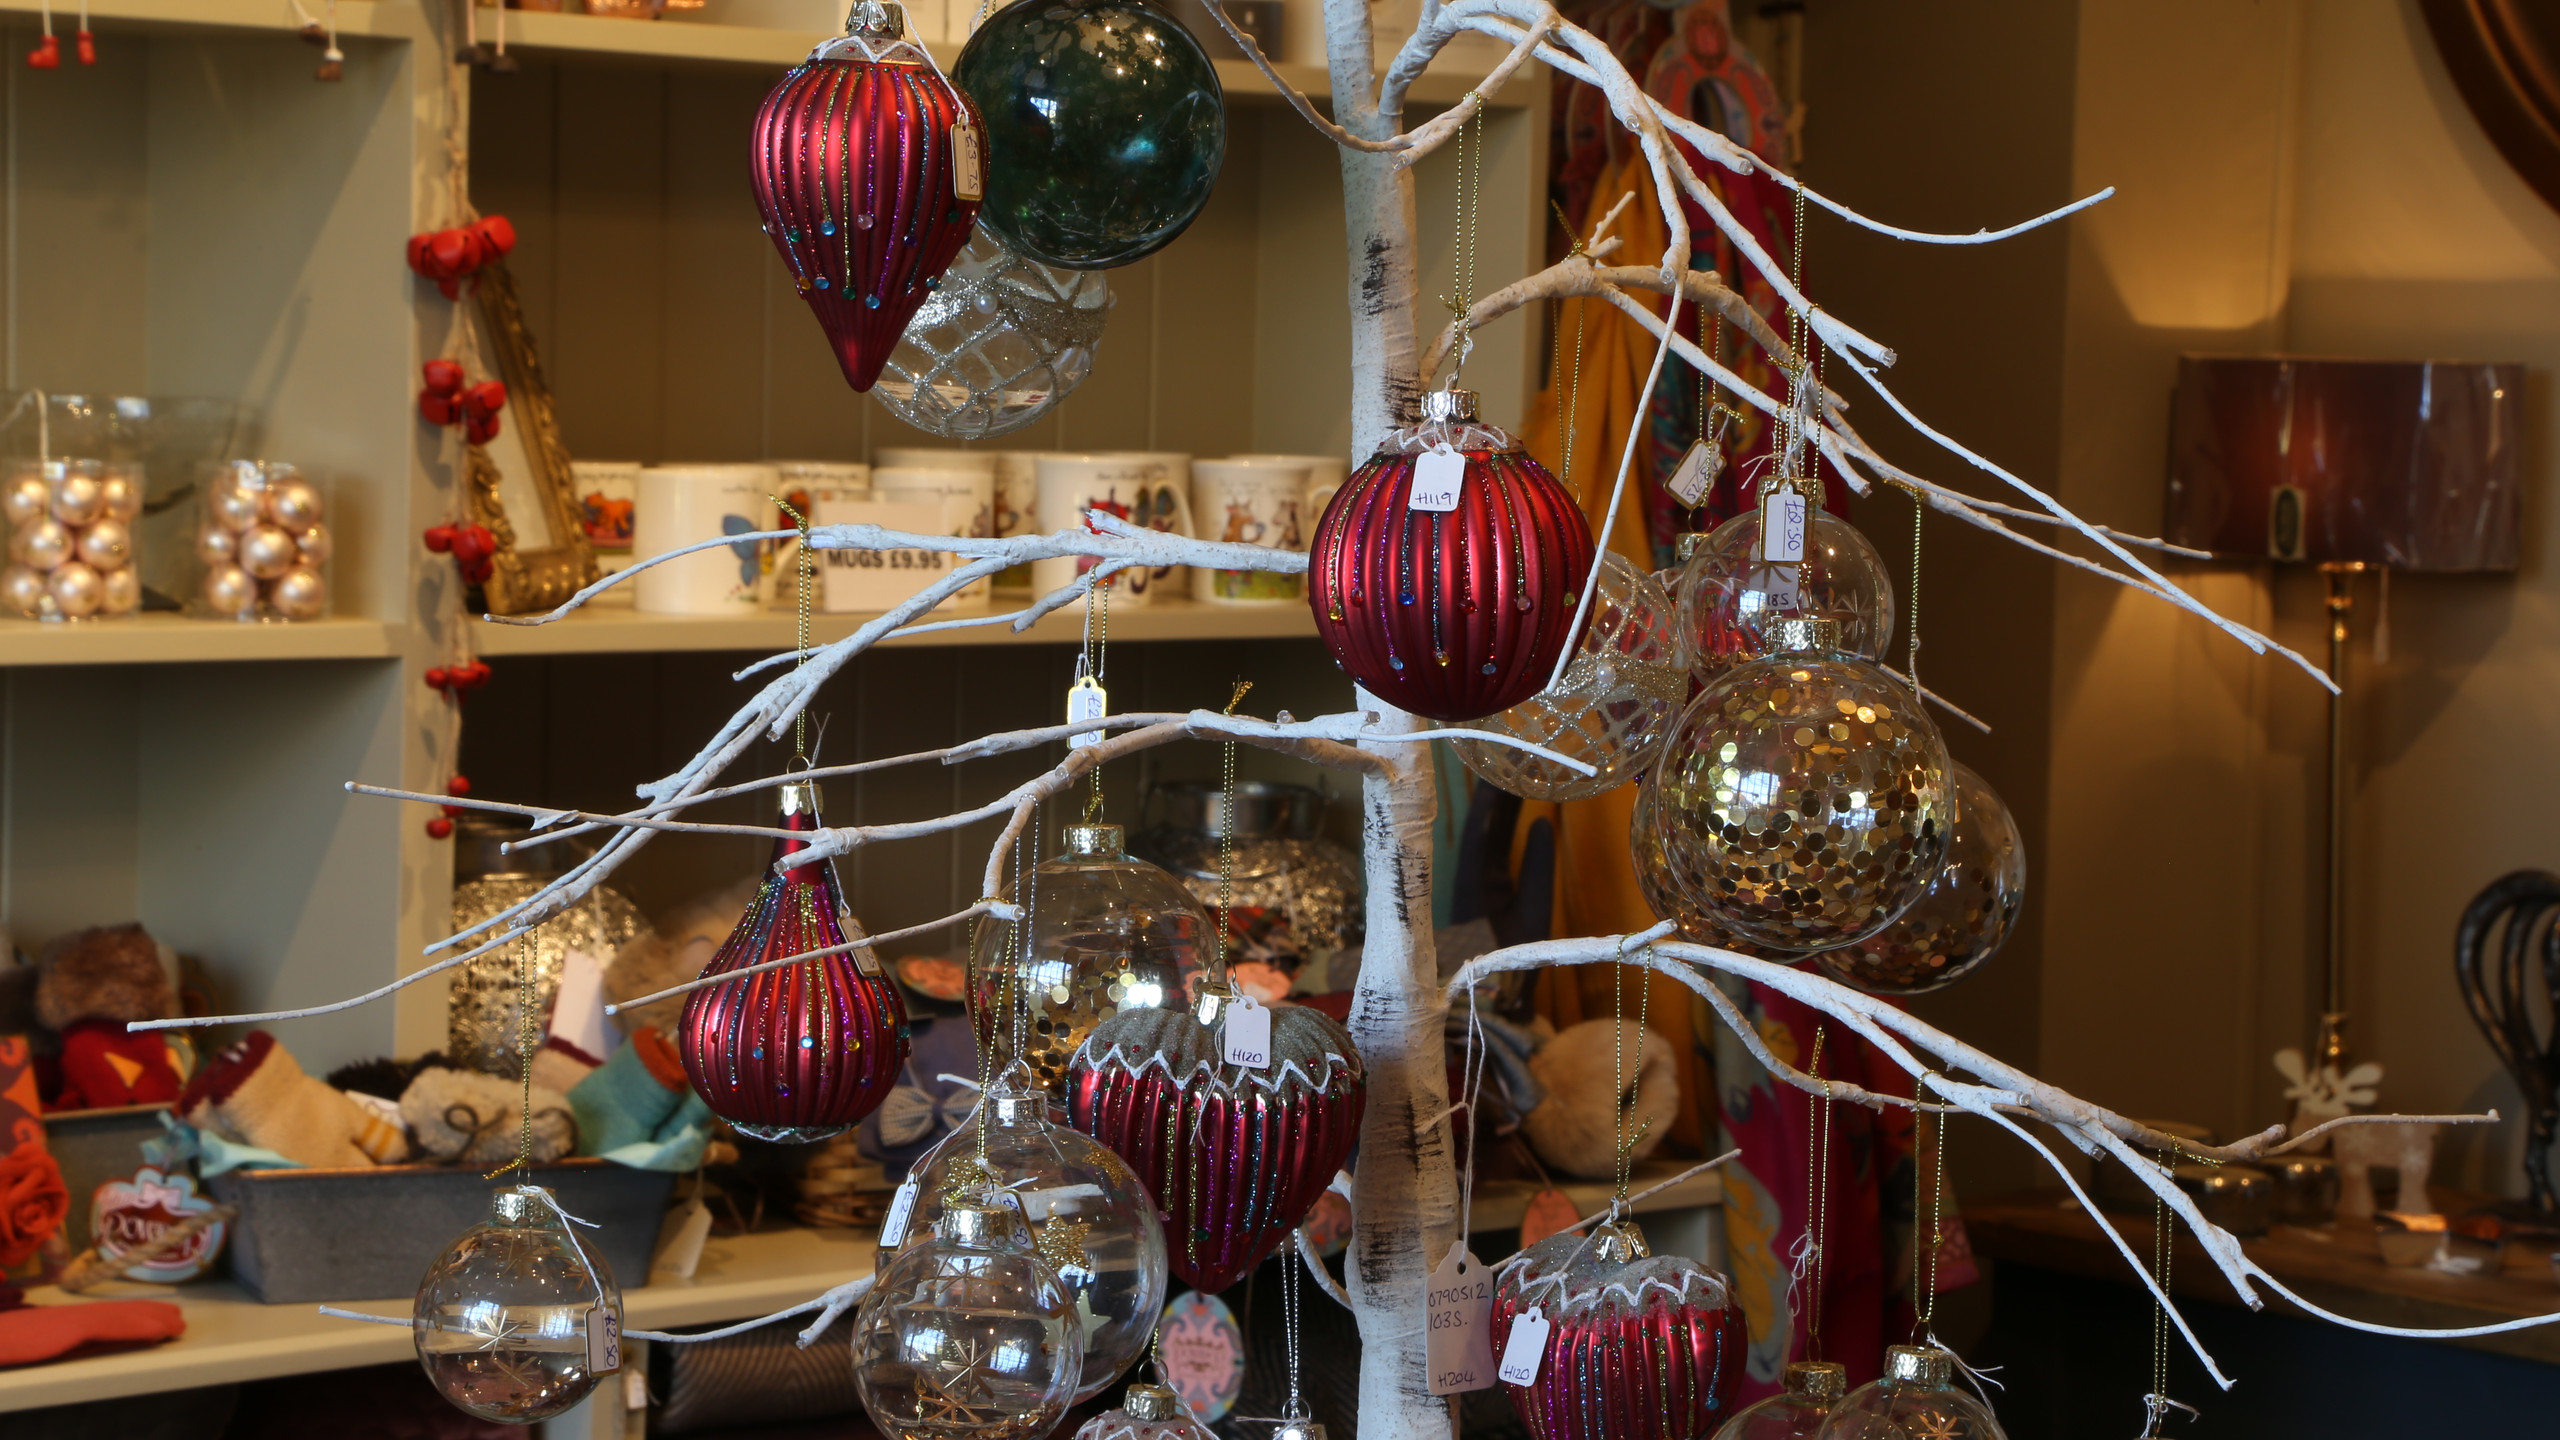 Decorations at Alison Home Furnishings